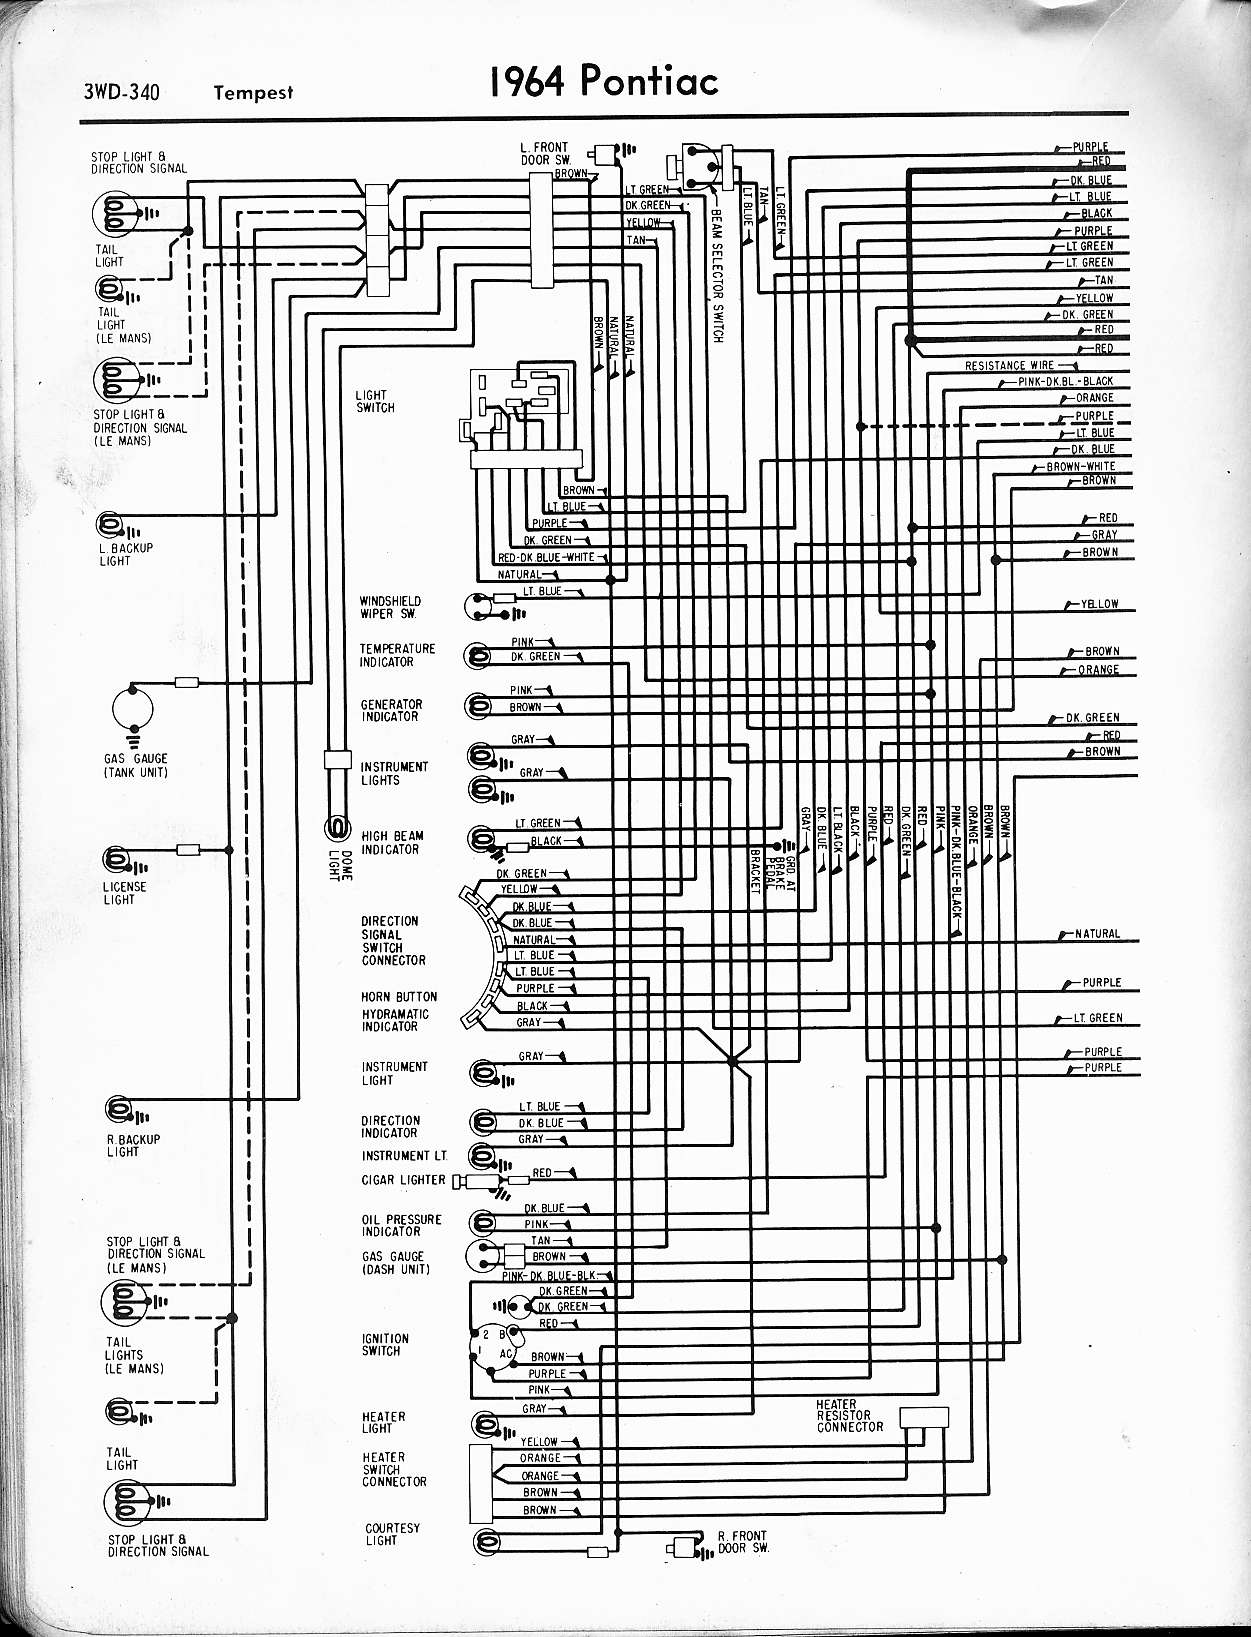 Enjoyable 1965 4 Wire Alternator Diagram Wiring Diagram Wiring Digital Resources Sapebecompassionincorg